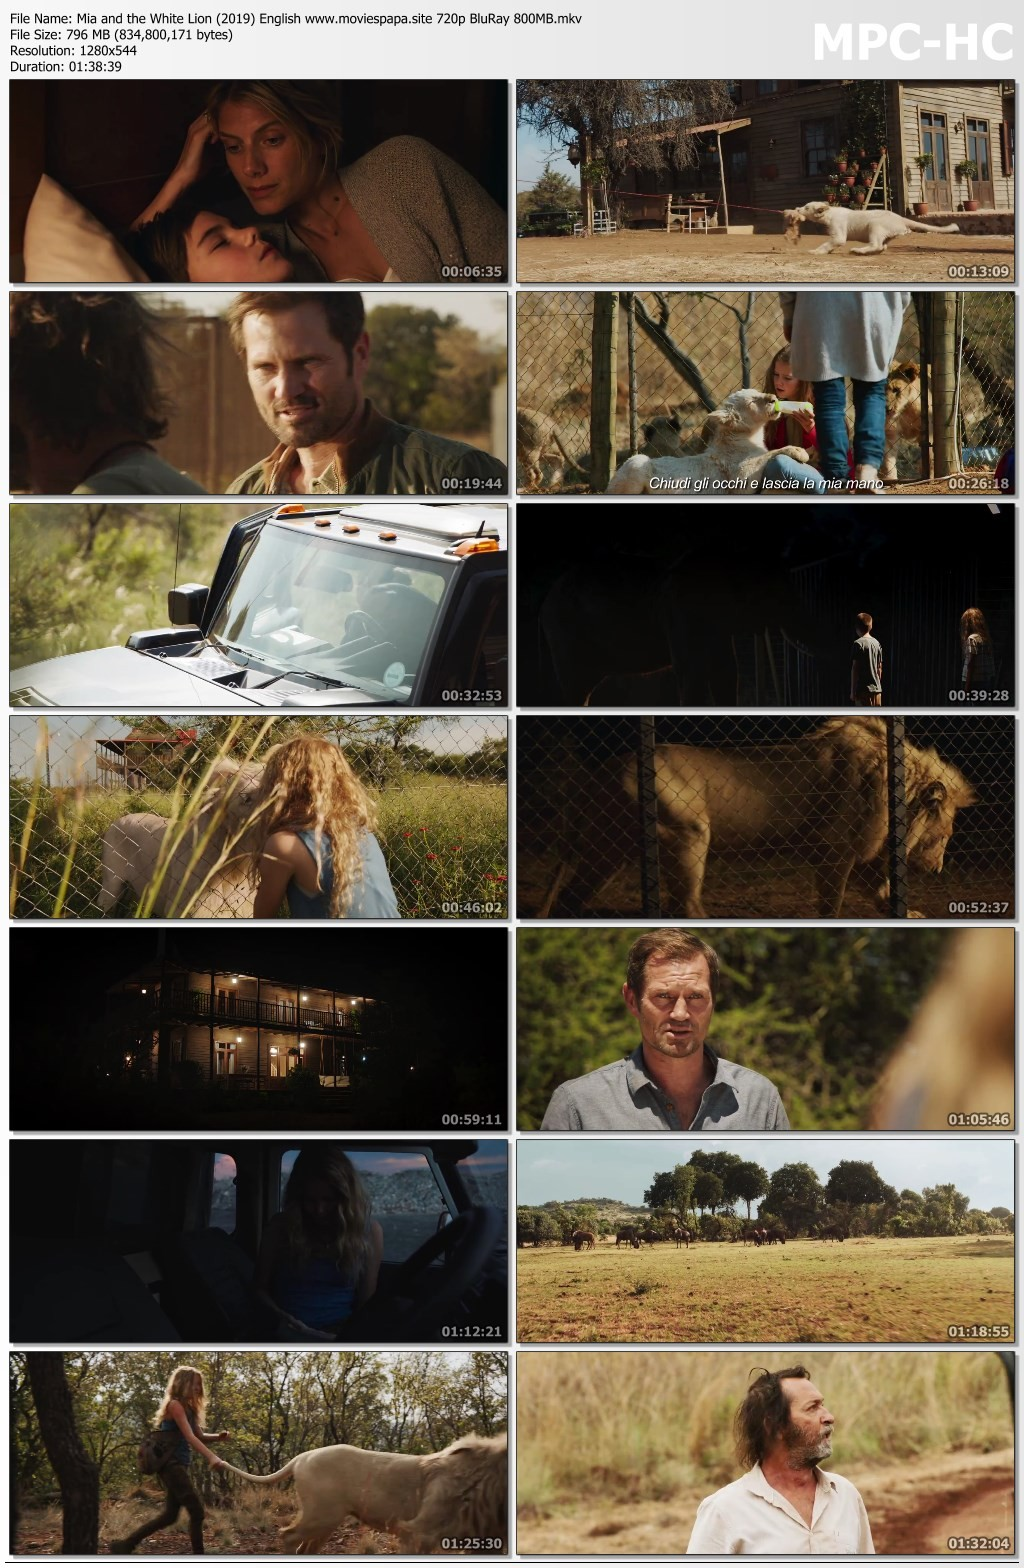 Lion hollywood movie download in hindi 720p | MSG The Warrior Lion